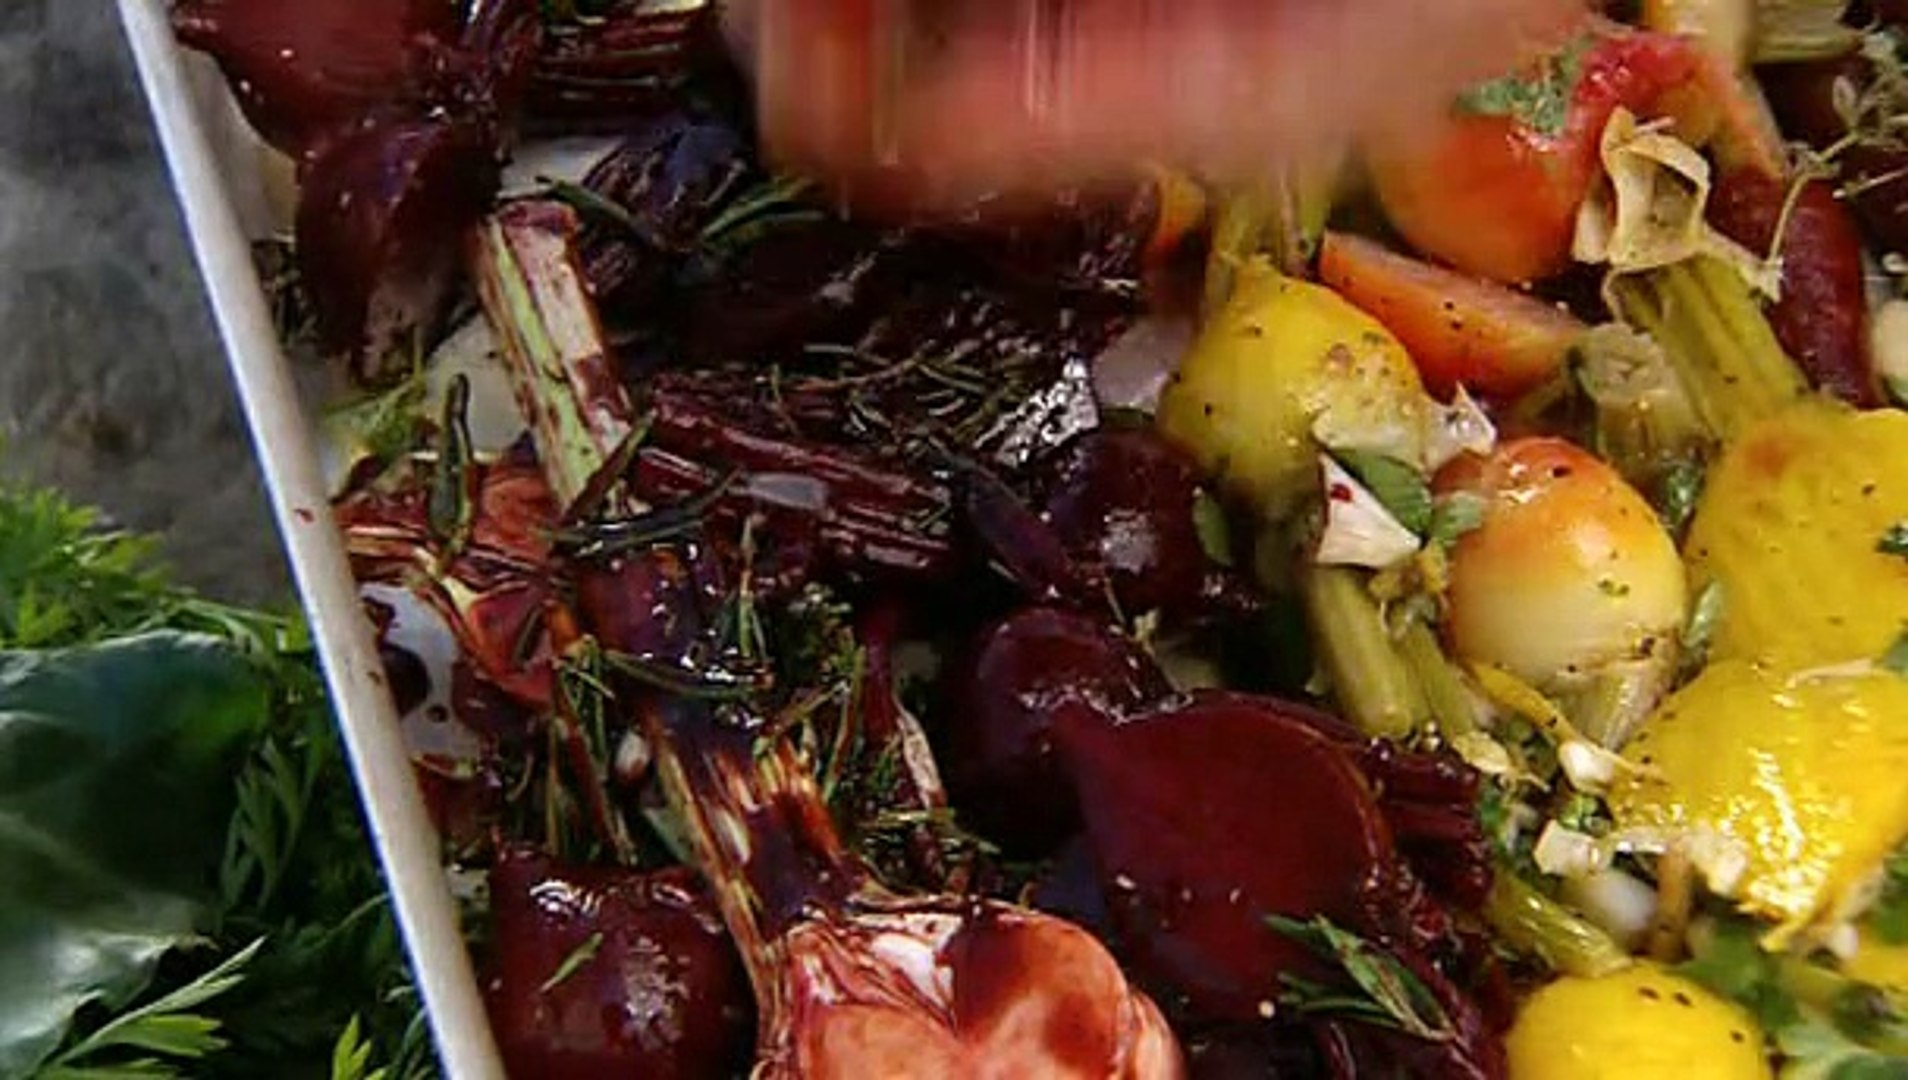 Jamie Oliver - Jamie at Home S01E06 - Carrots and Beets